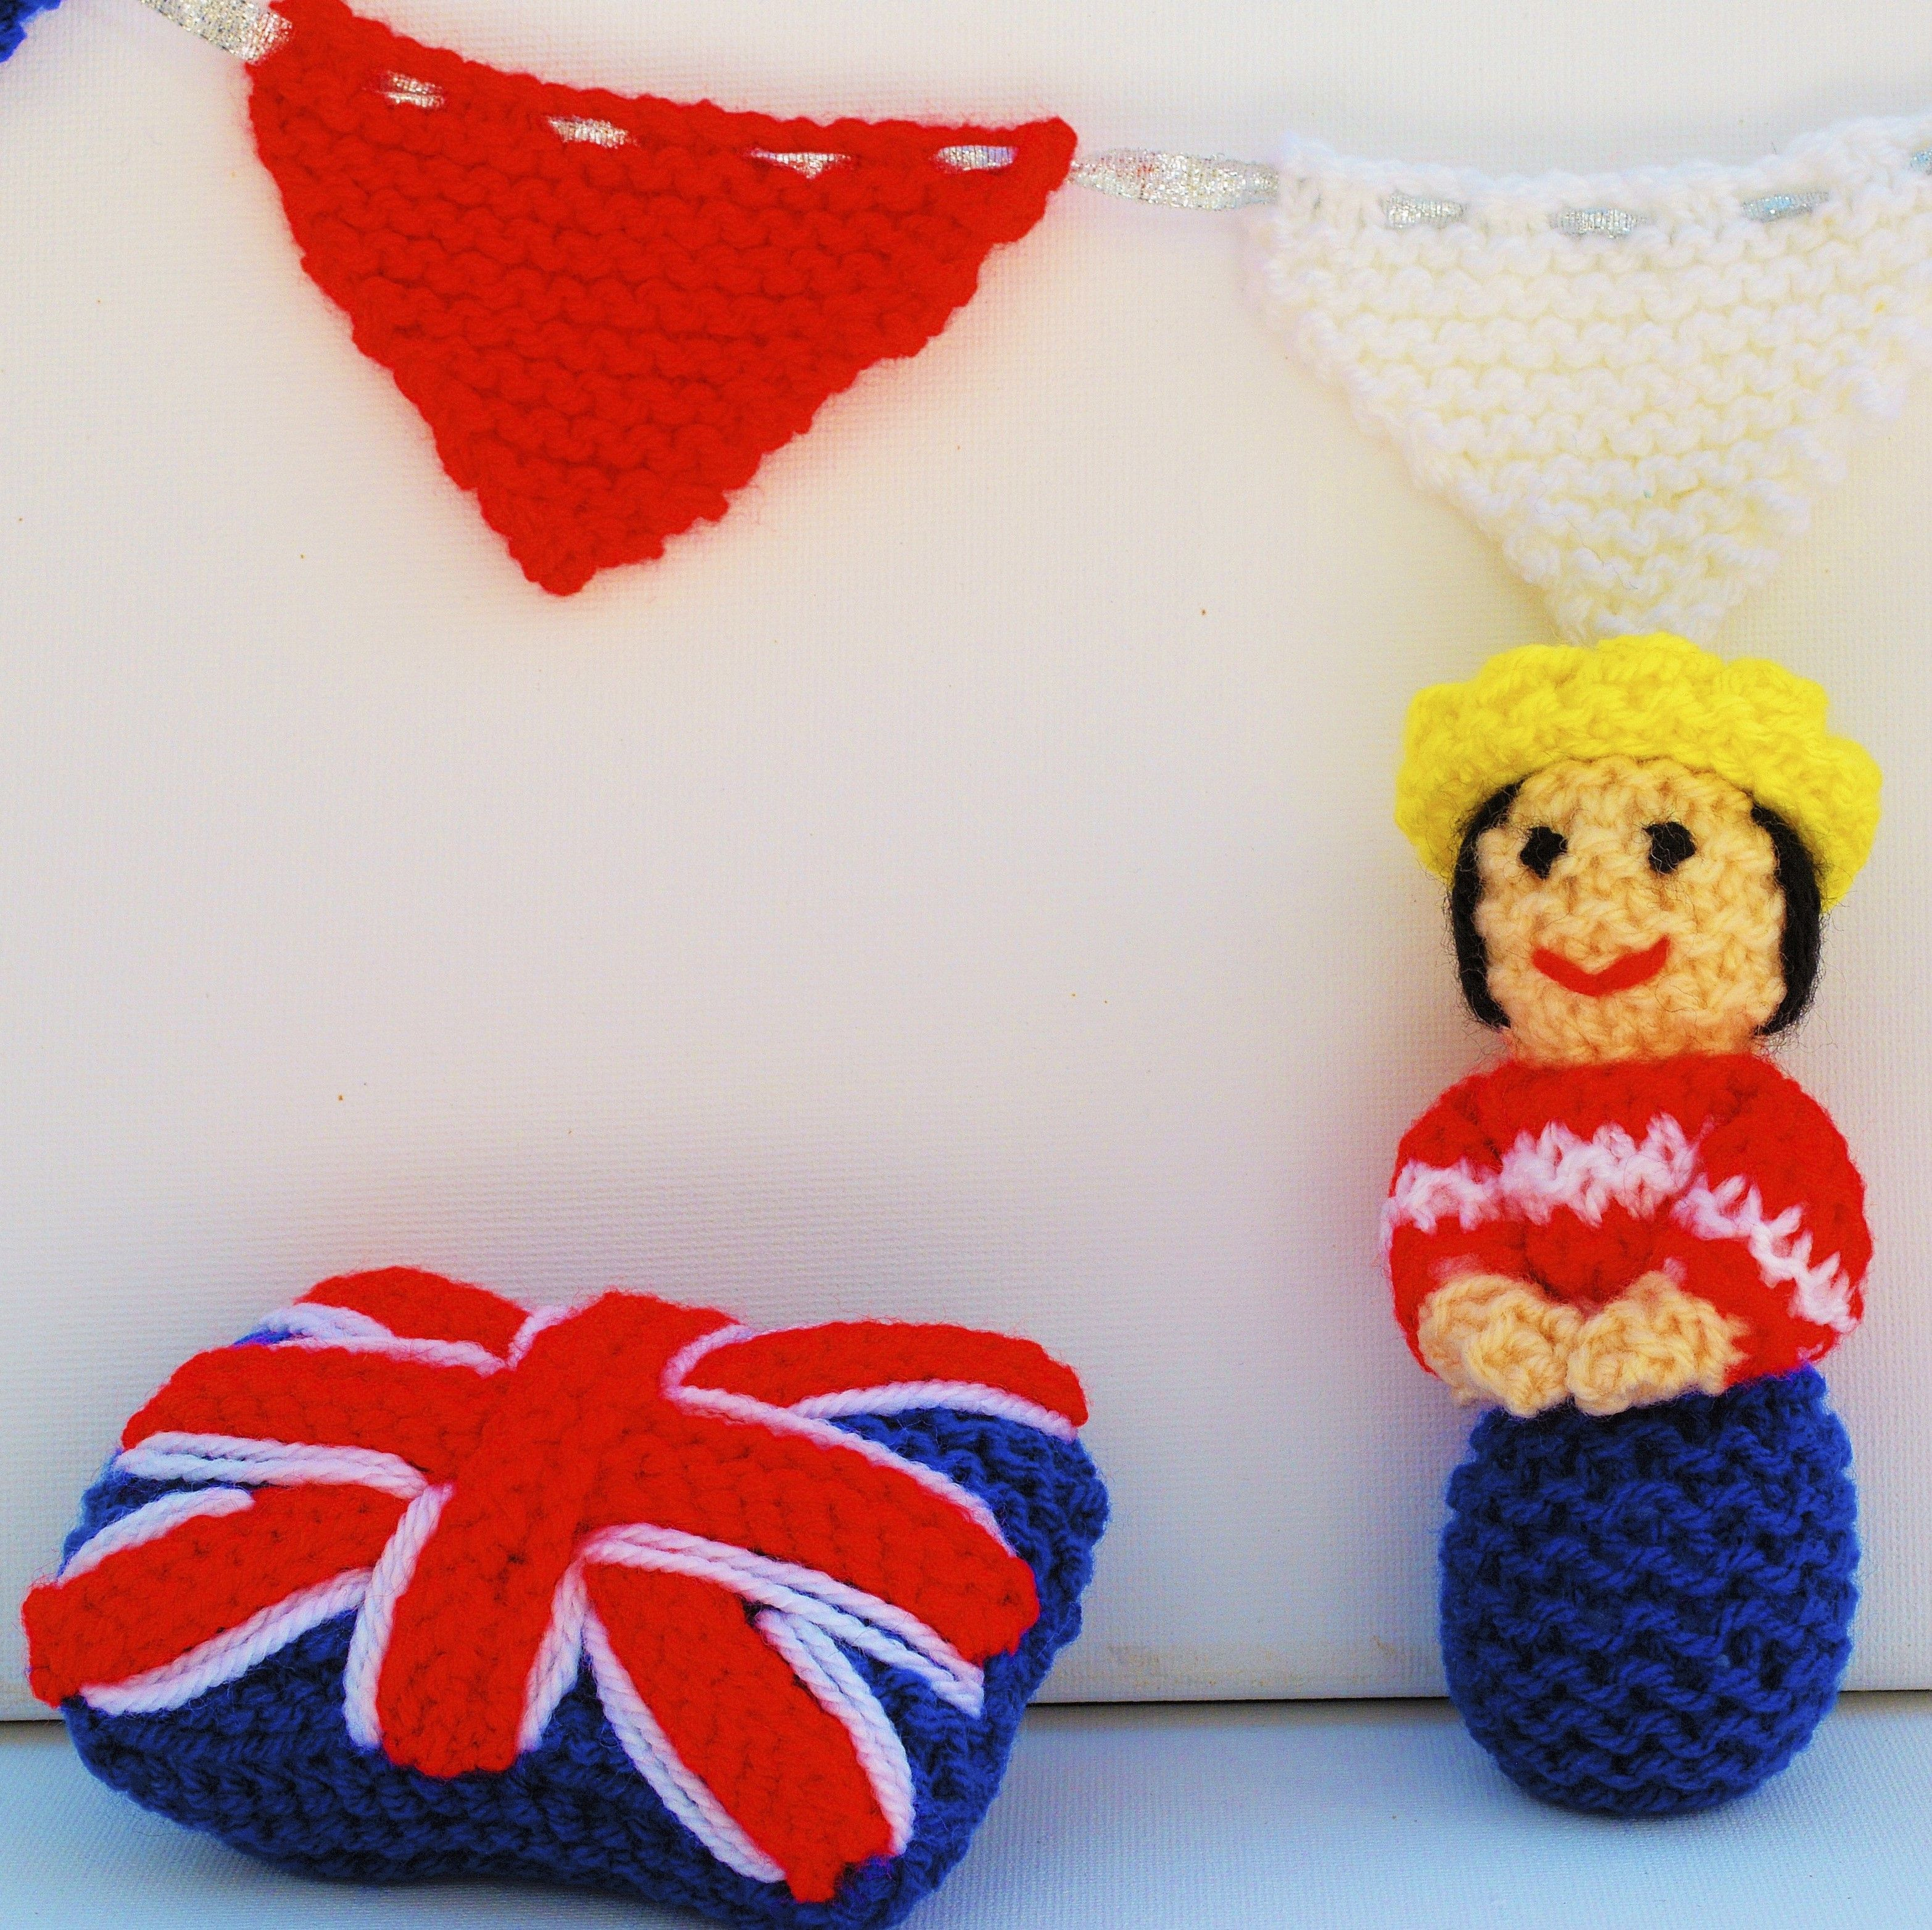 Queen Doll and Bunting Knitting Pattern   Knit patterns, Beginner ...